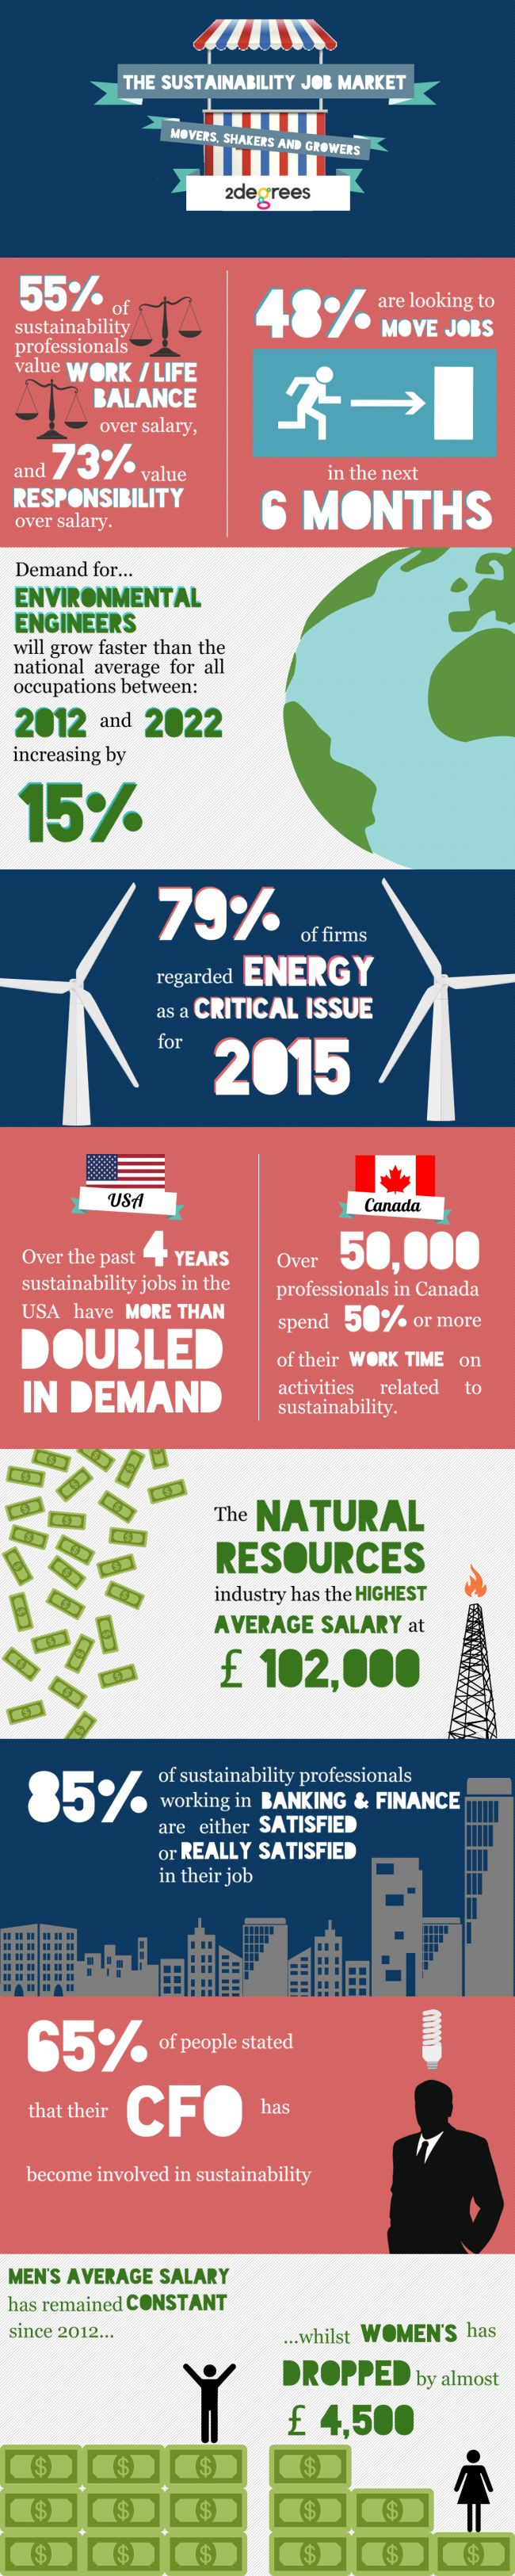 What Does the Sustainability Job Market Look Like? | #infographic #sustycareers